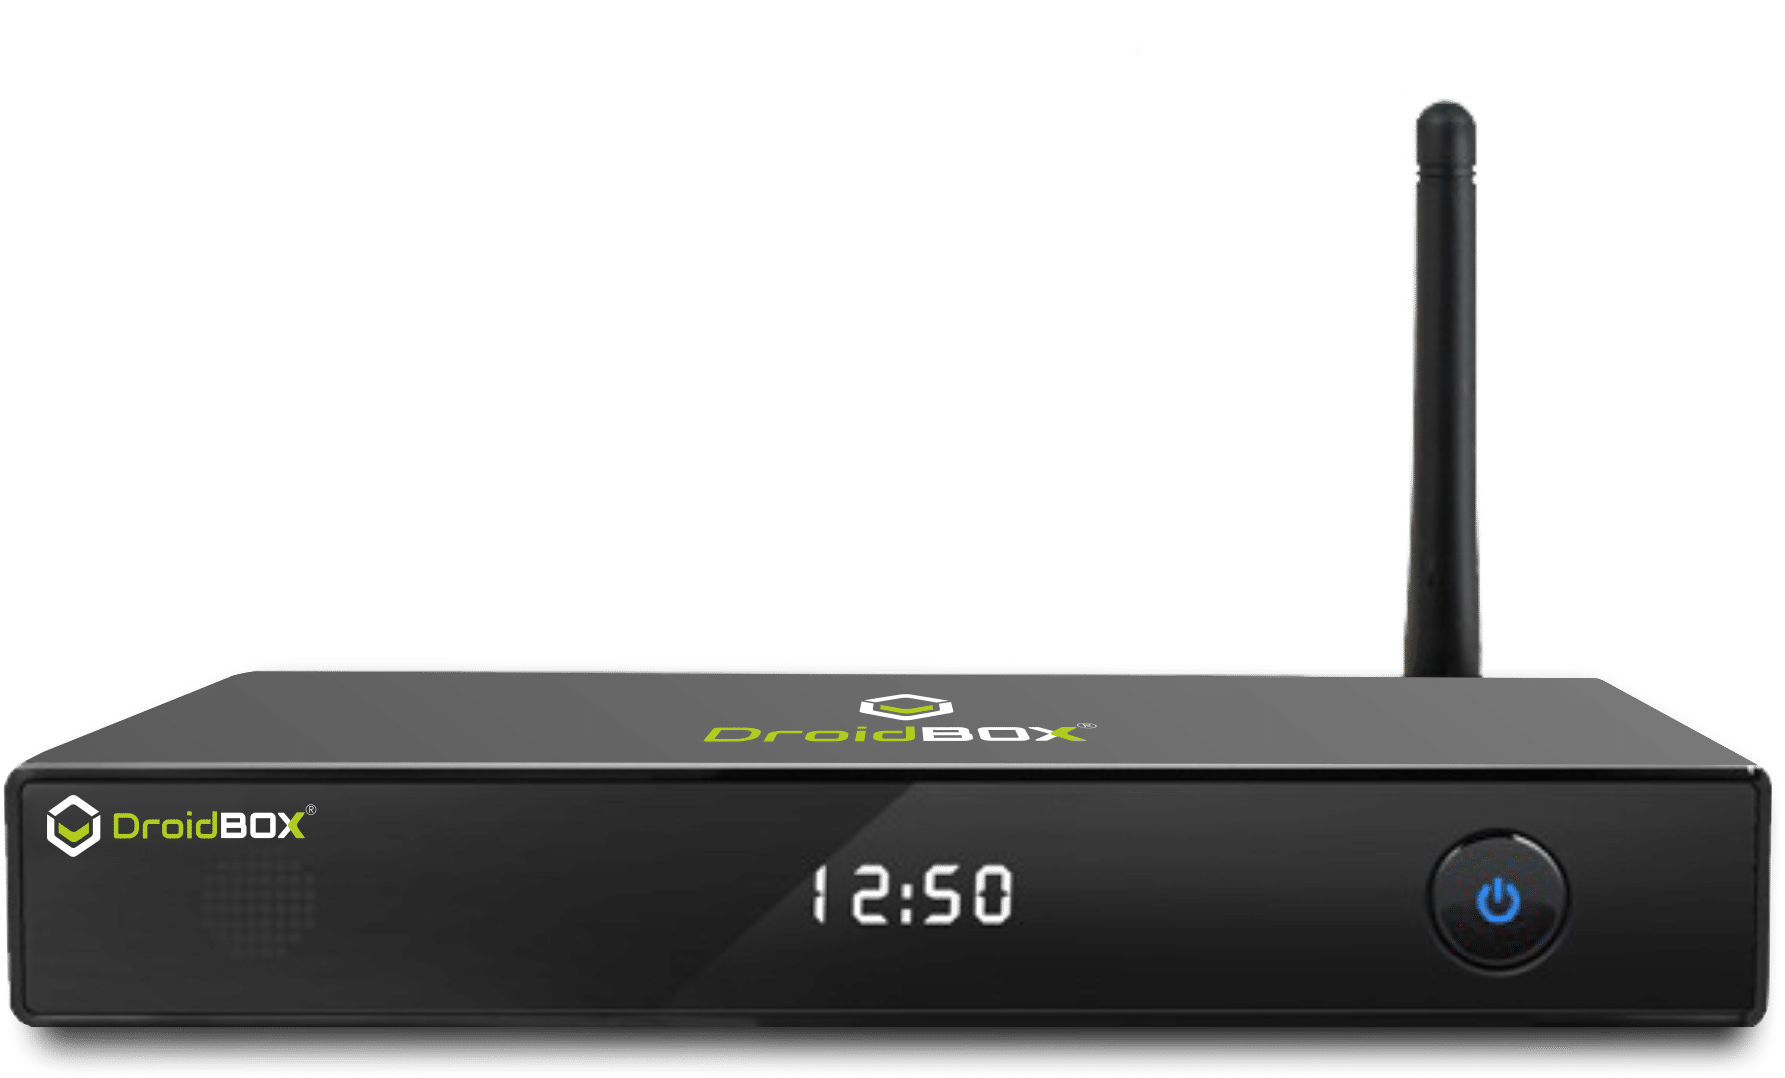 DroidBOX M5 (Refurbished) Android Set Top Box front view